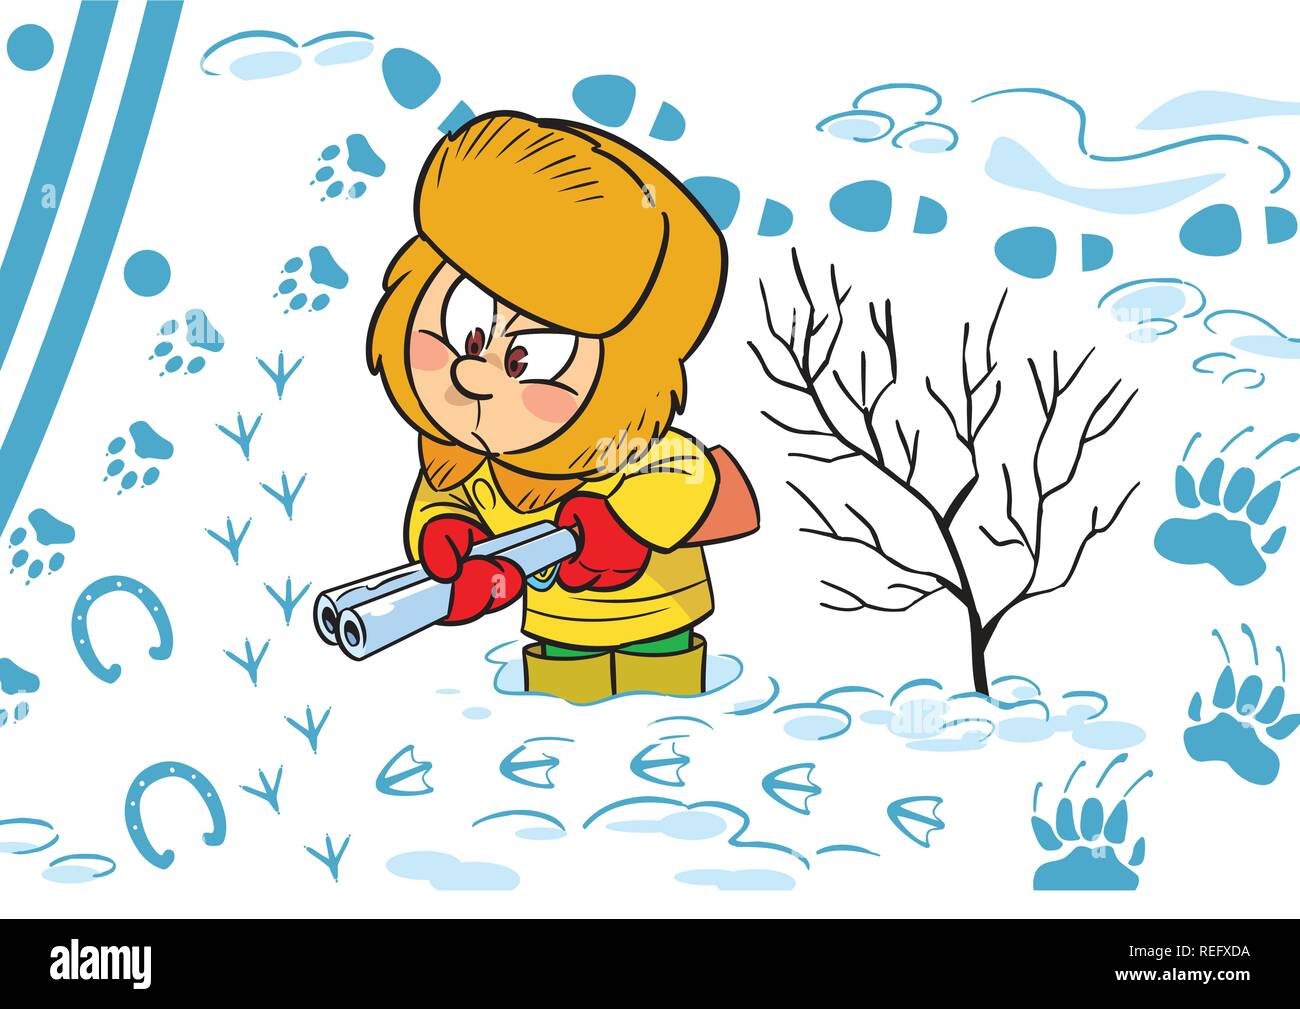 The illustration shows a child's play outdoors in the winter. He plays with a toy ranger shotgun and studying animal tracks. - Stock Vector